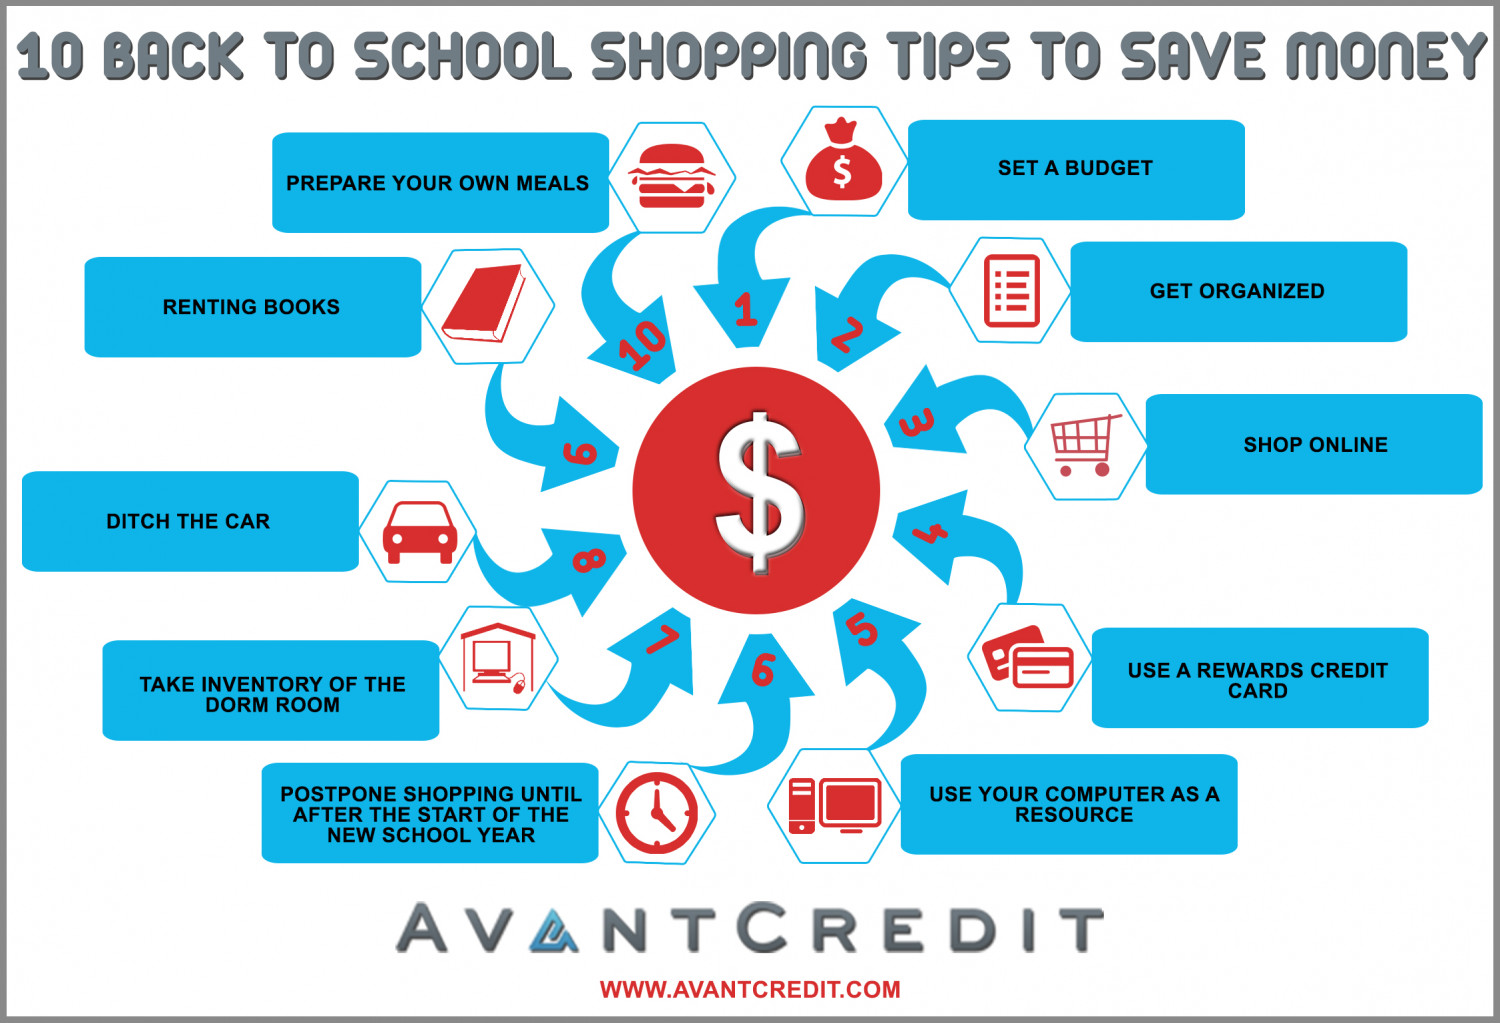 Watch How to Save Money on Back-to-School Shopping video